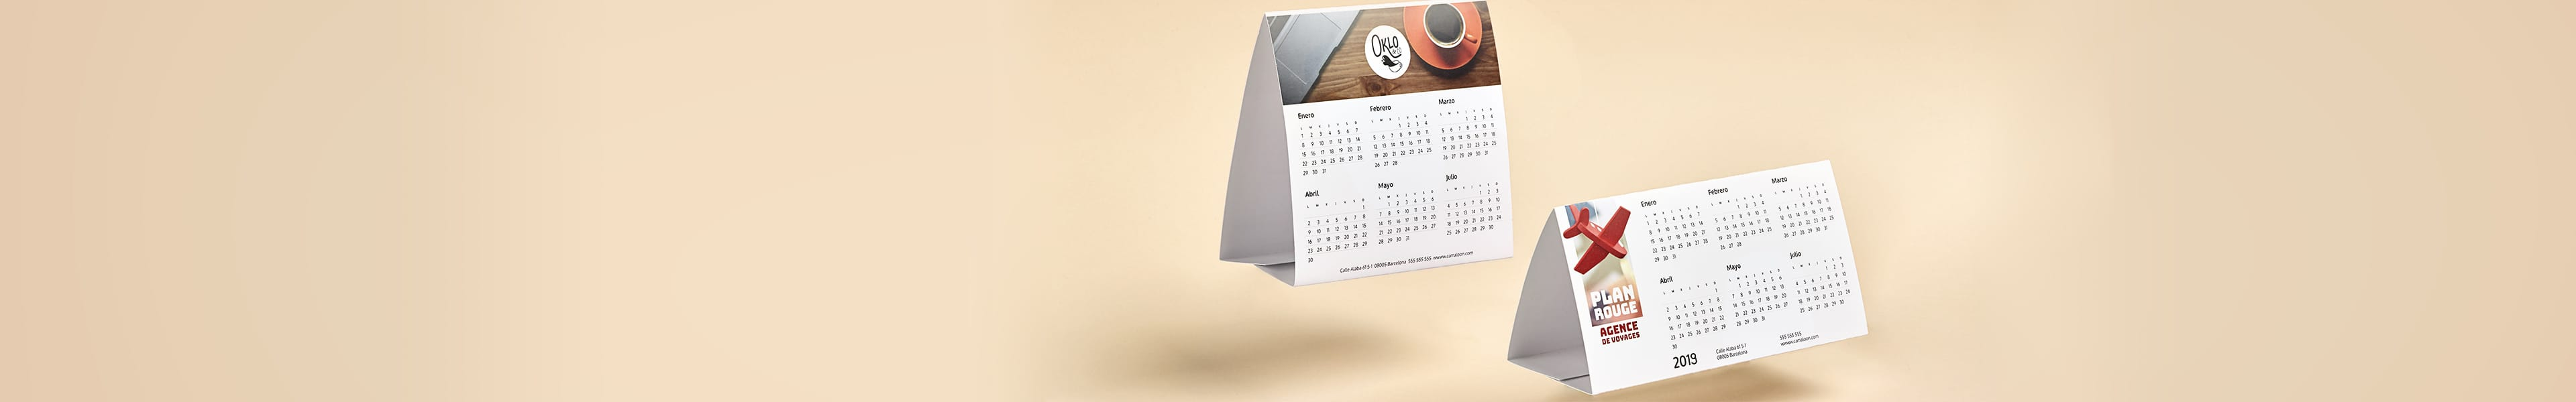 Calendriers simples de table 2019